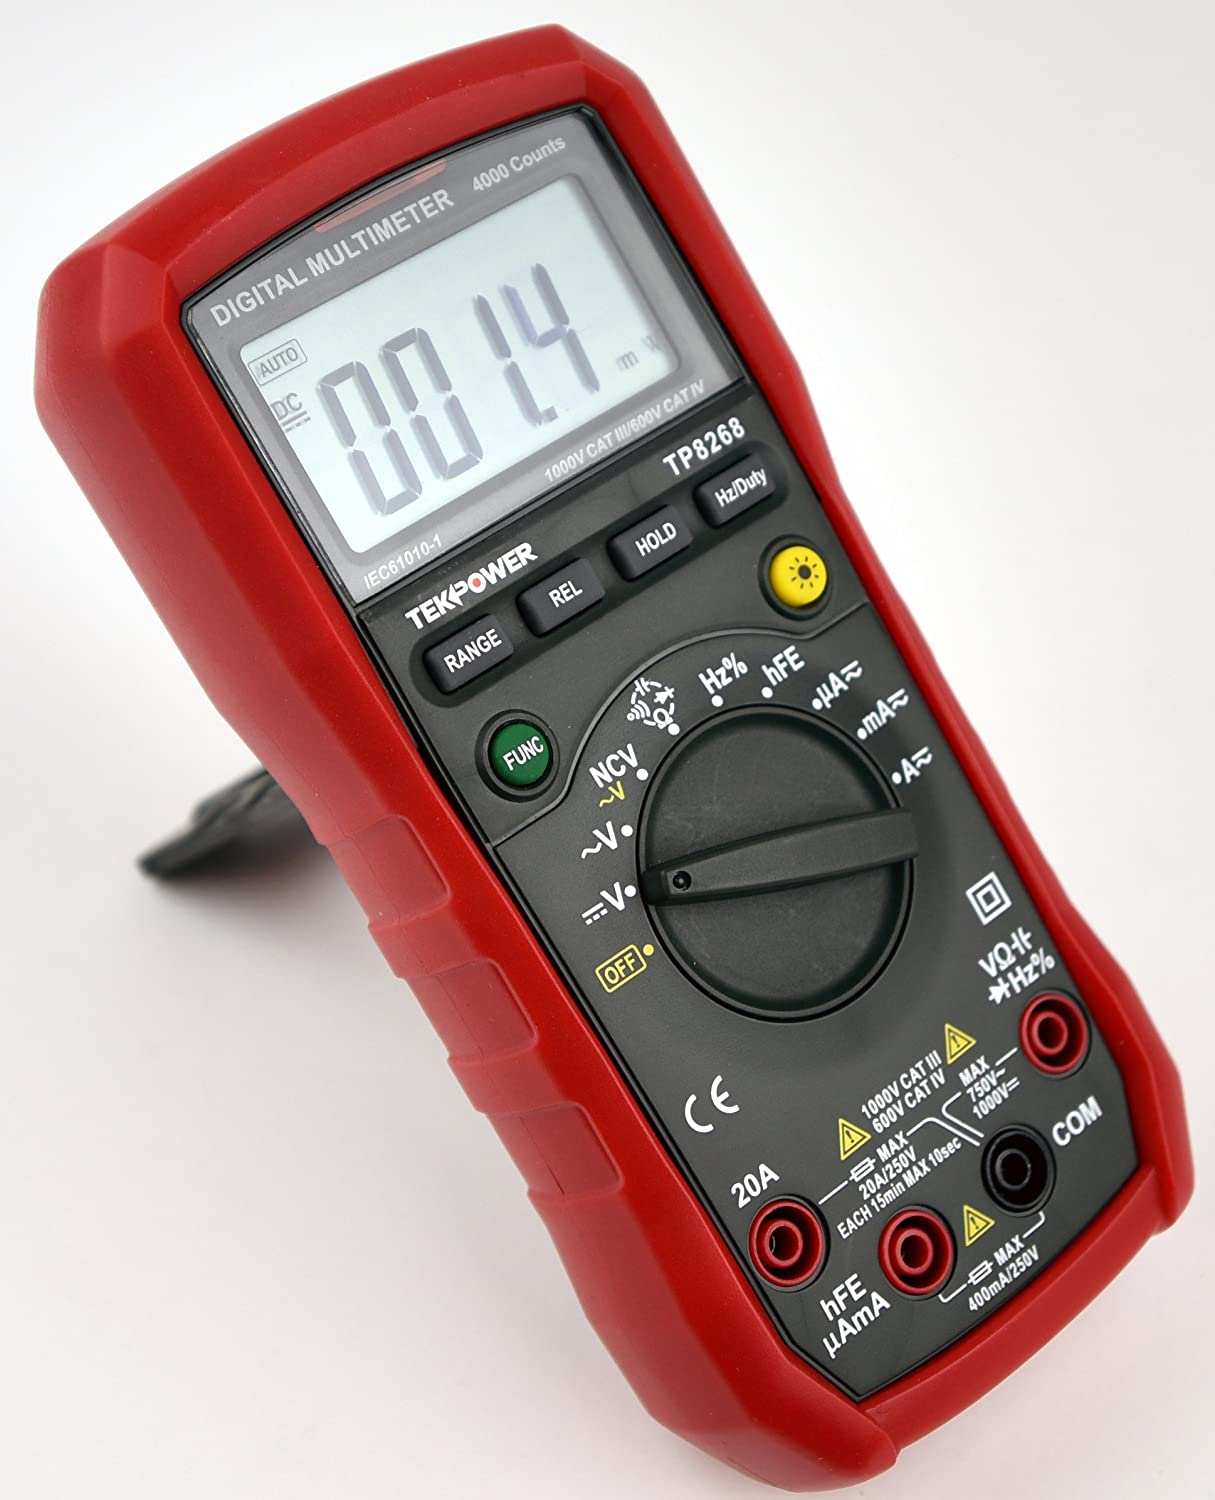 Tekpower TP8268 AC/DC Auto/Manual Range Digital Multimeter with NCV Feature, Mastech MS8268 Upgraded, MS88